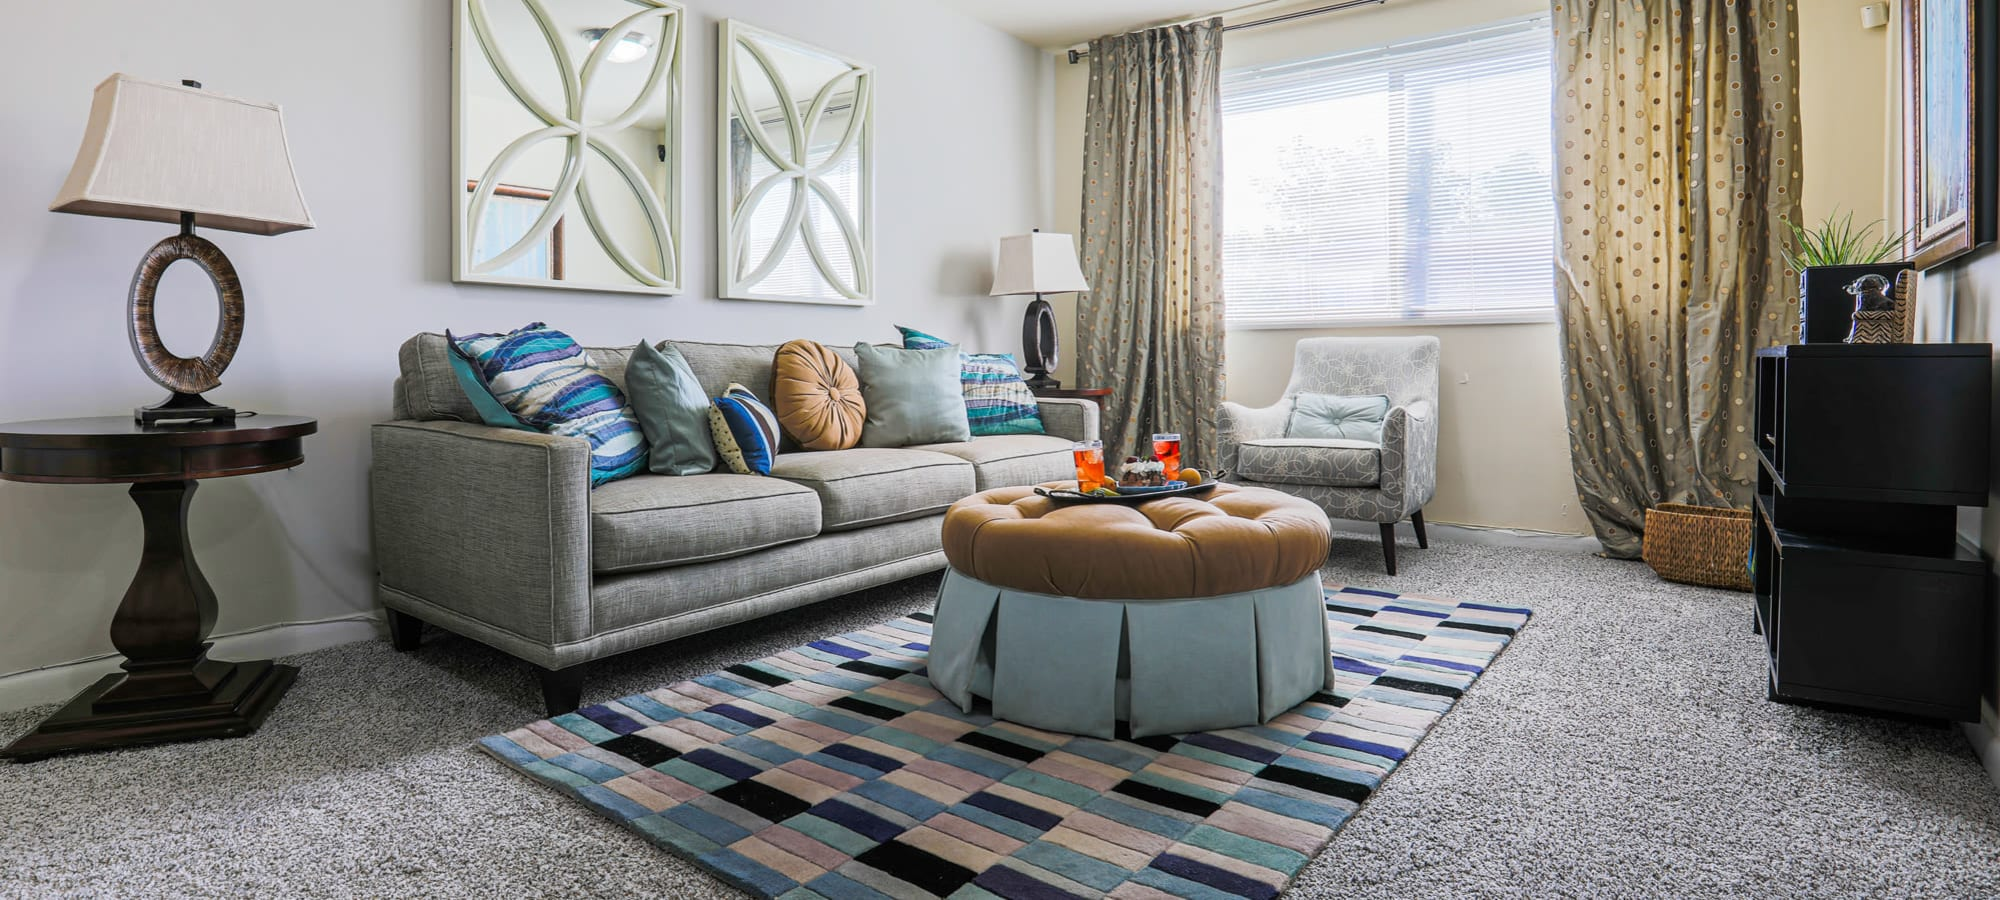 Model living room at Regency Pointe in Forestville, Maryland